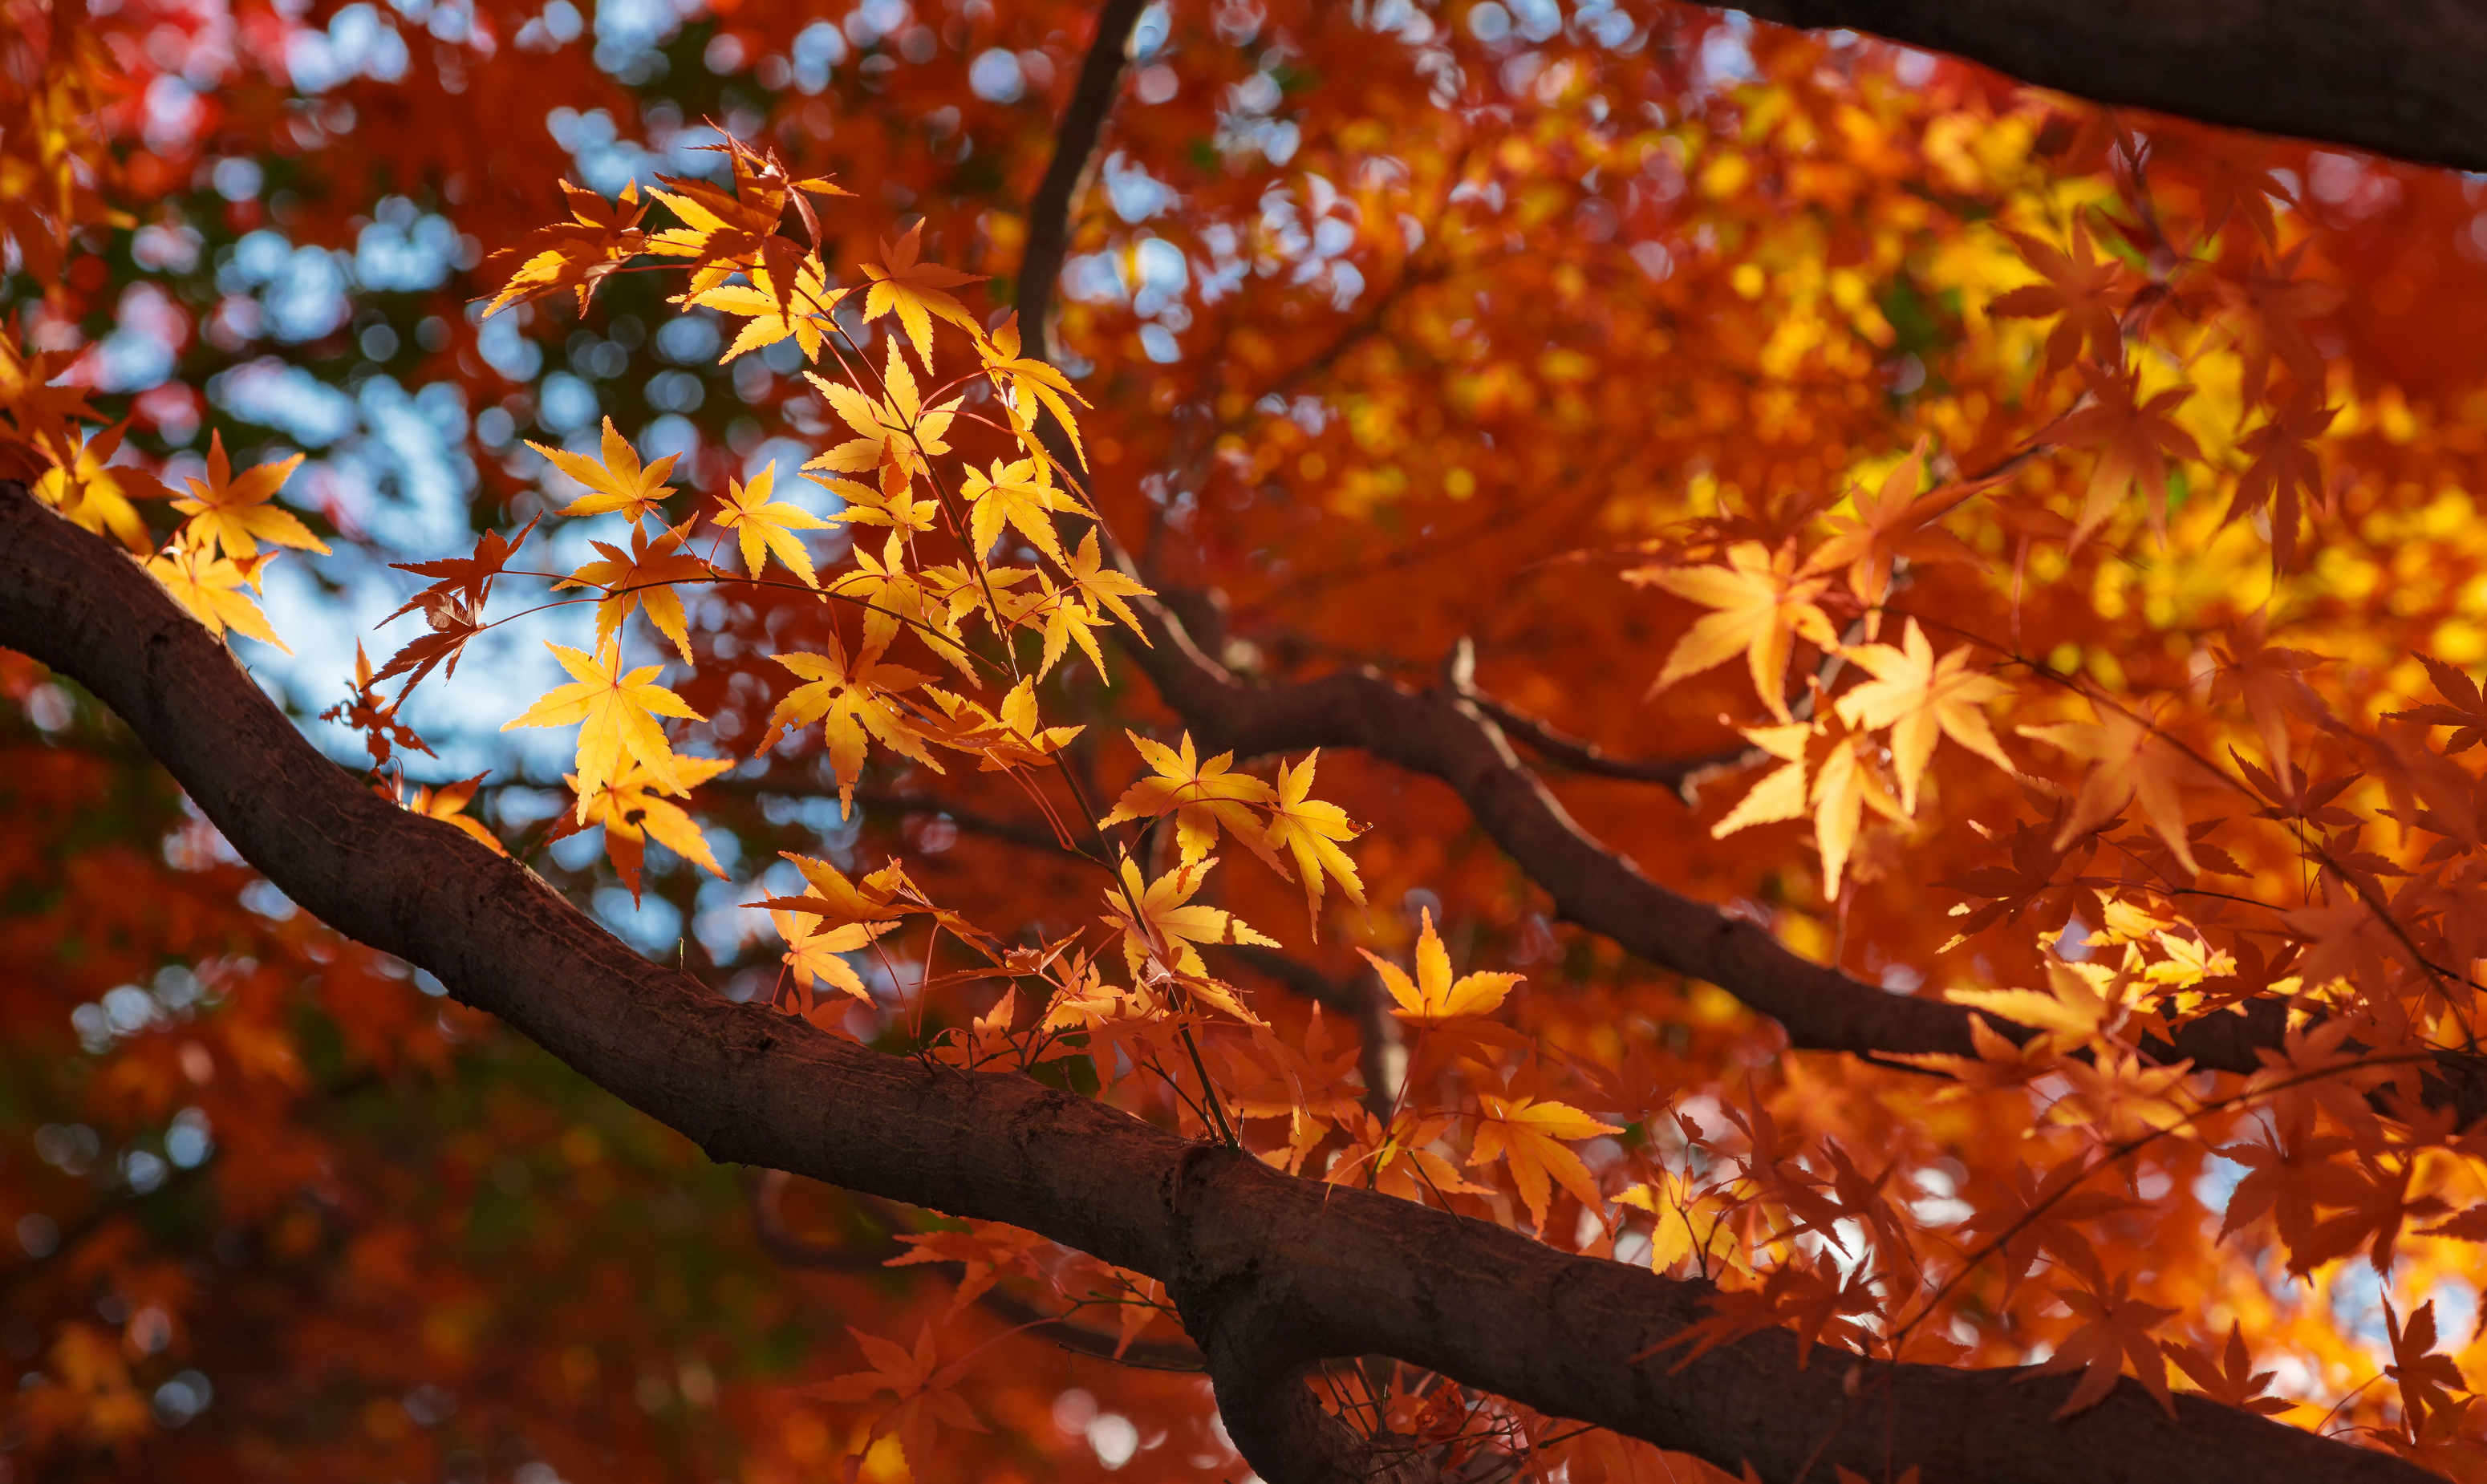 A beautiful maple tree with colorful autumn leaves to illustrate How To Care For A New Maple Sapling In The Winter